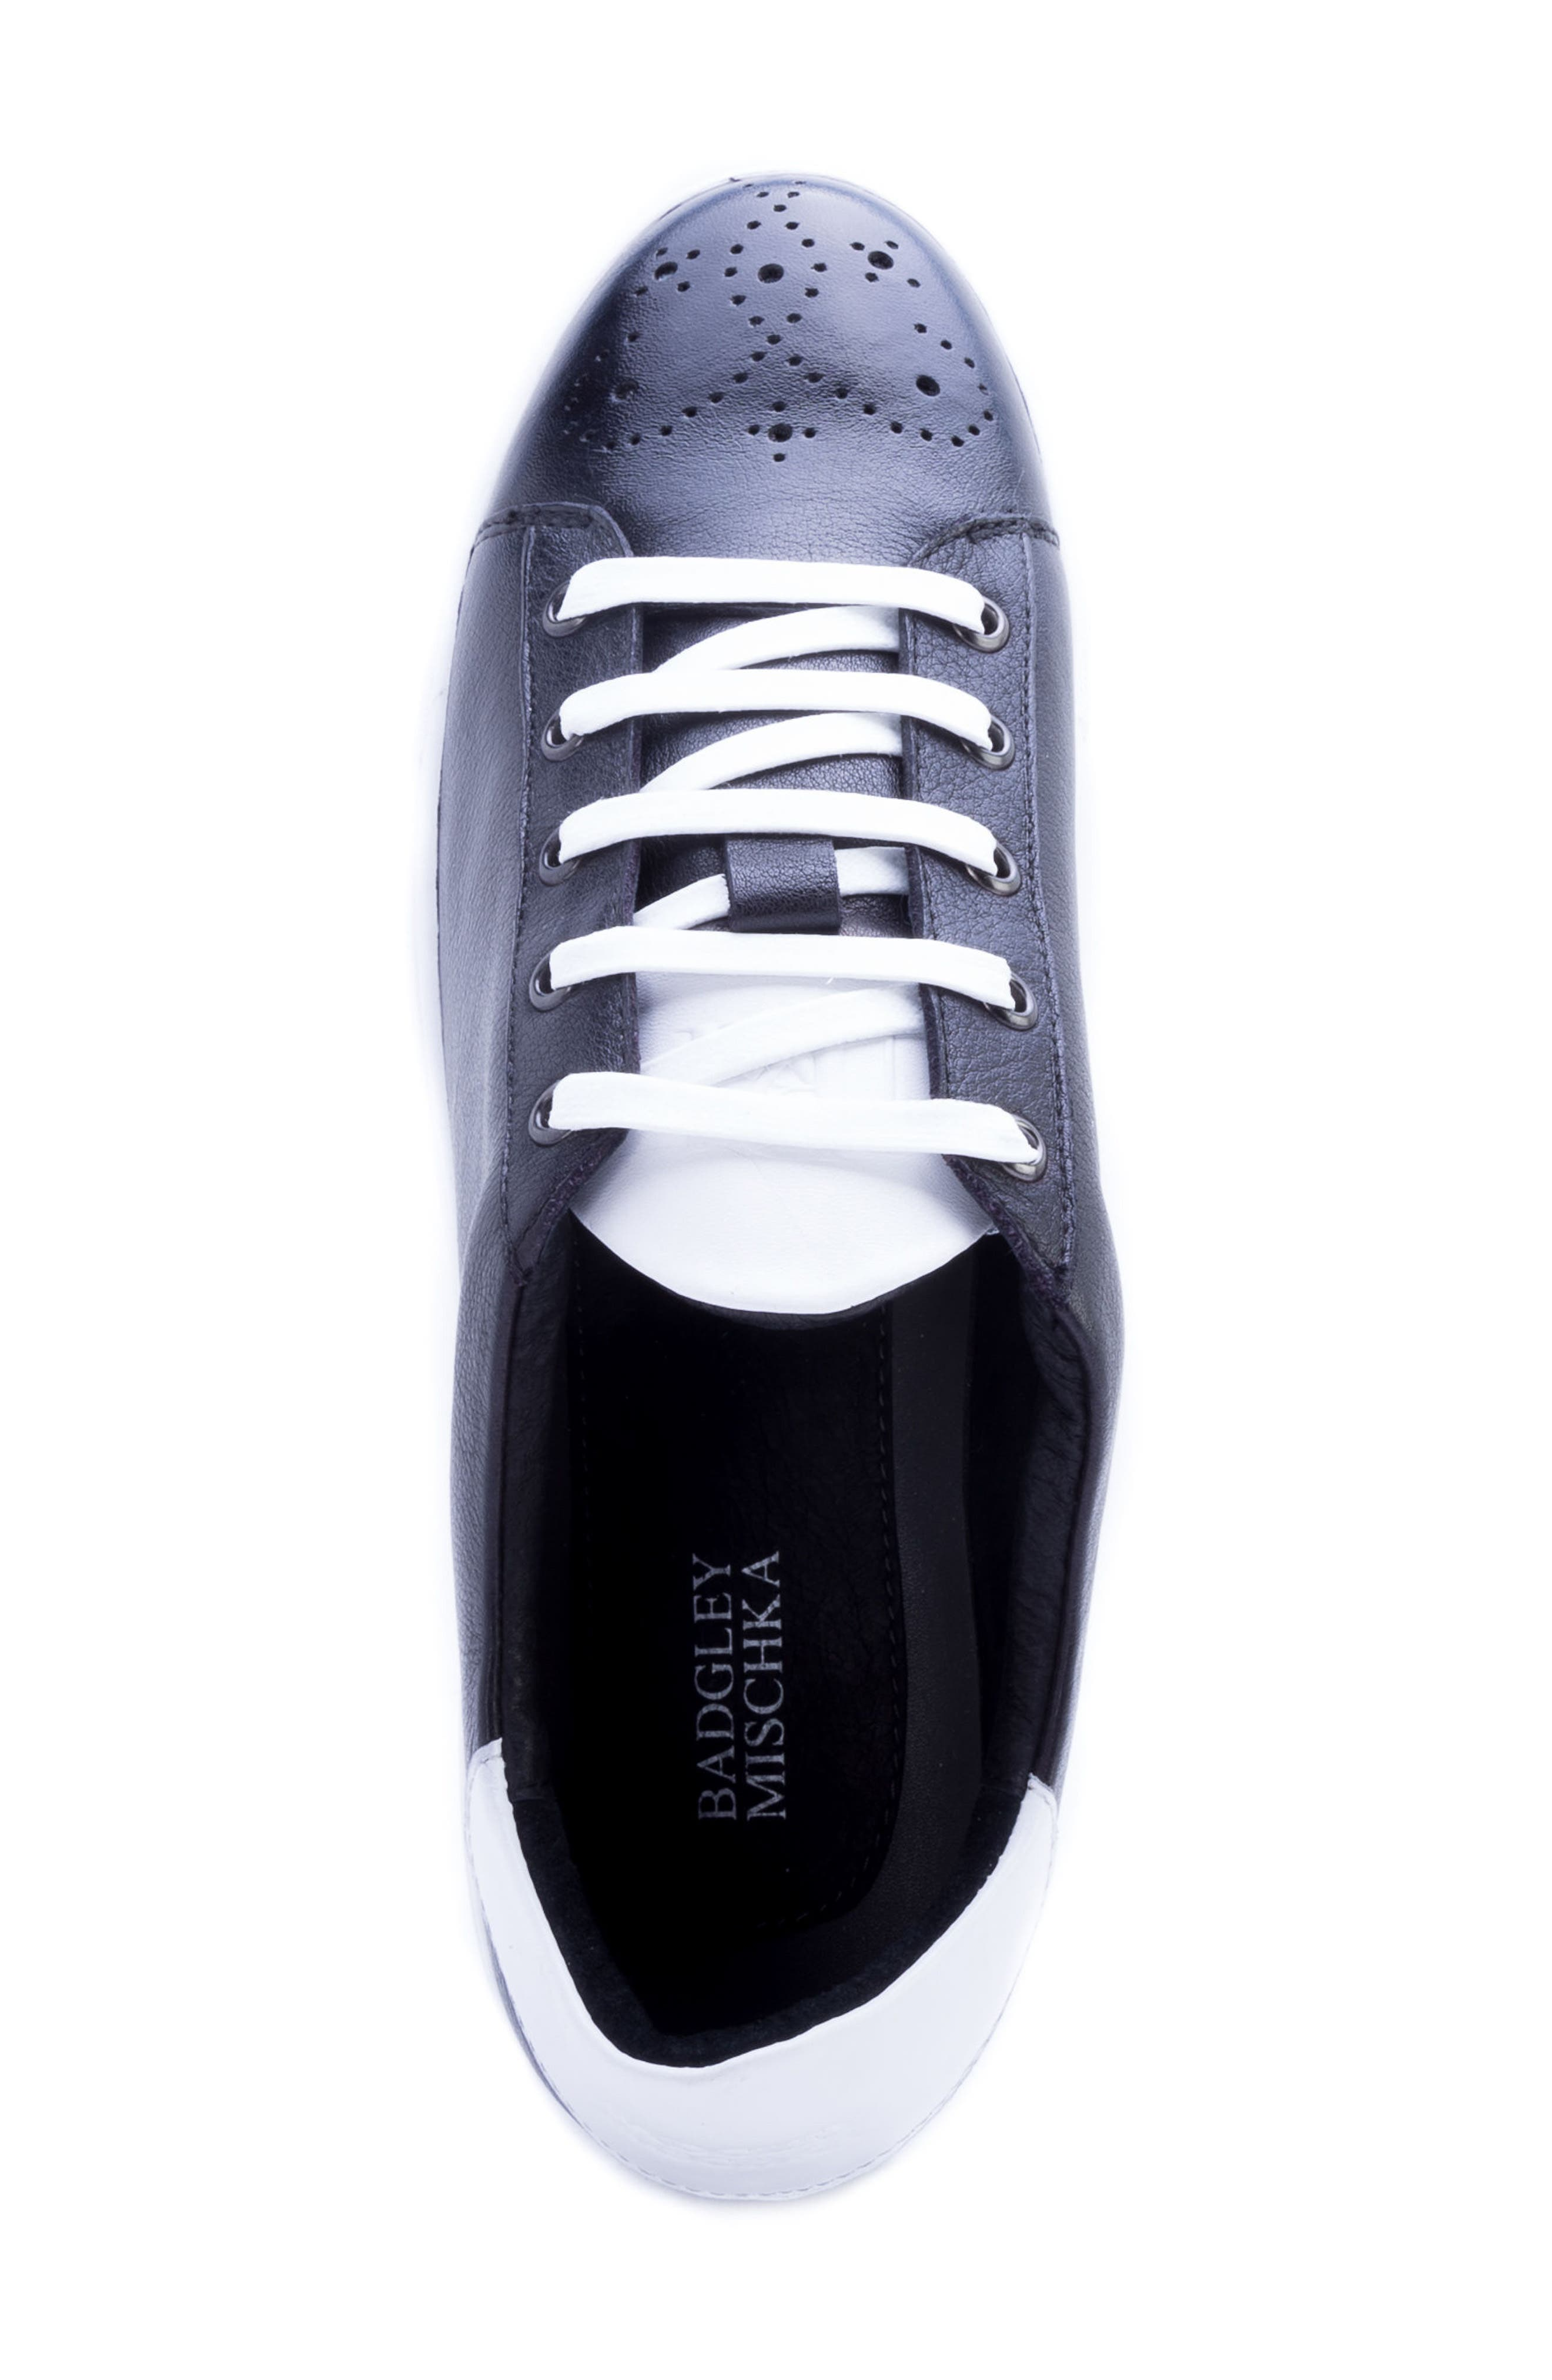 Sinatra Sneaker,                             Alternate thumbnail 5, color,                             BLACK LEATHER